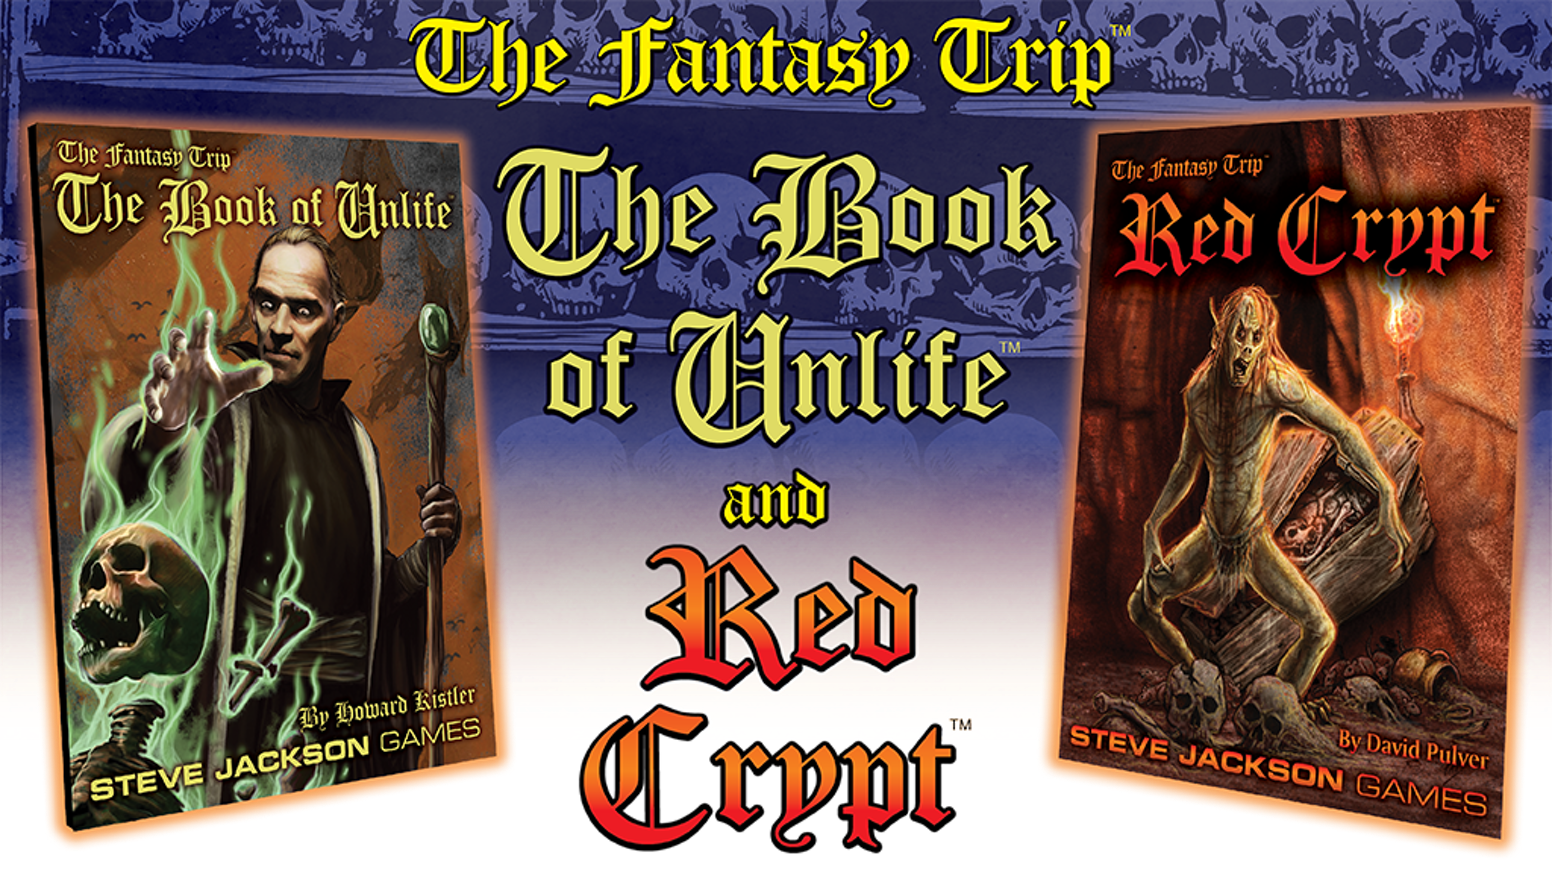 New books for The Fantasy Trip! A guide to many of the known kinds of unlife and a new solitaire adventure. Choose one or choose both!